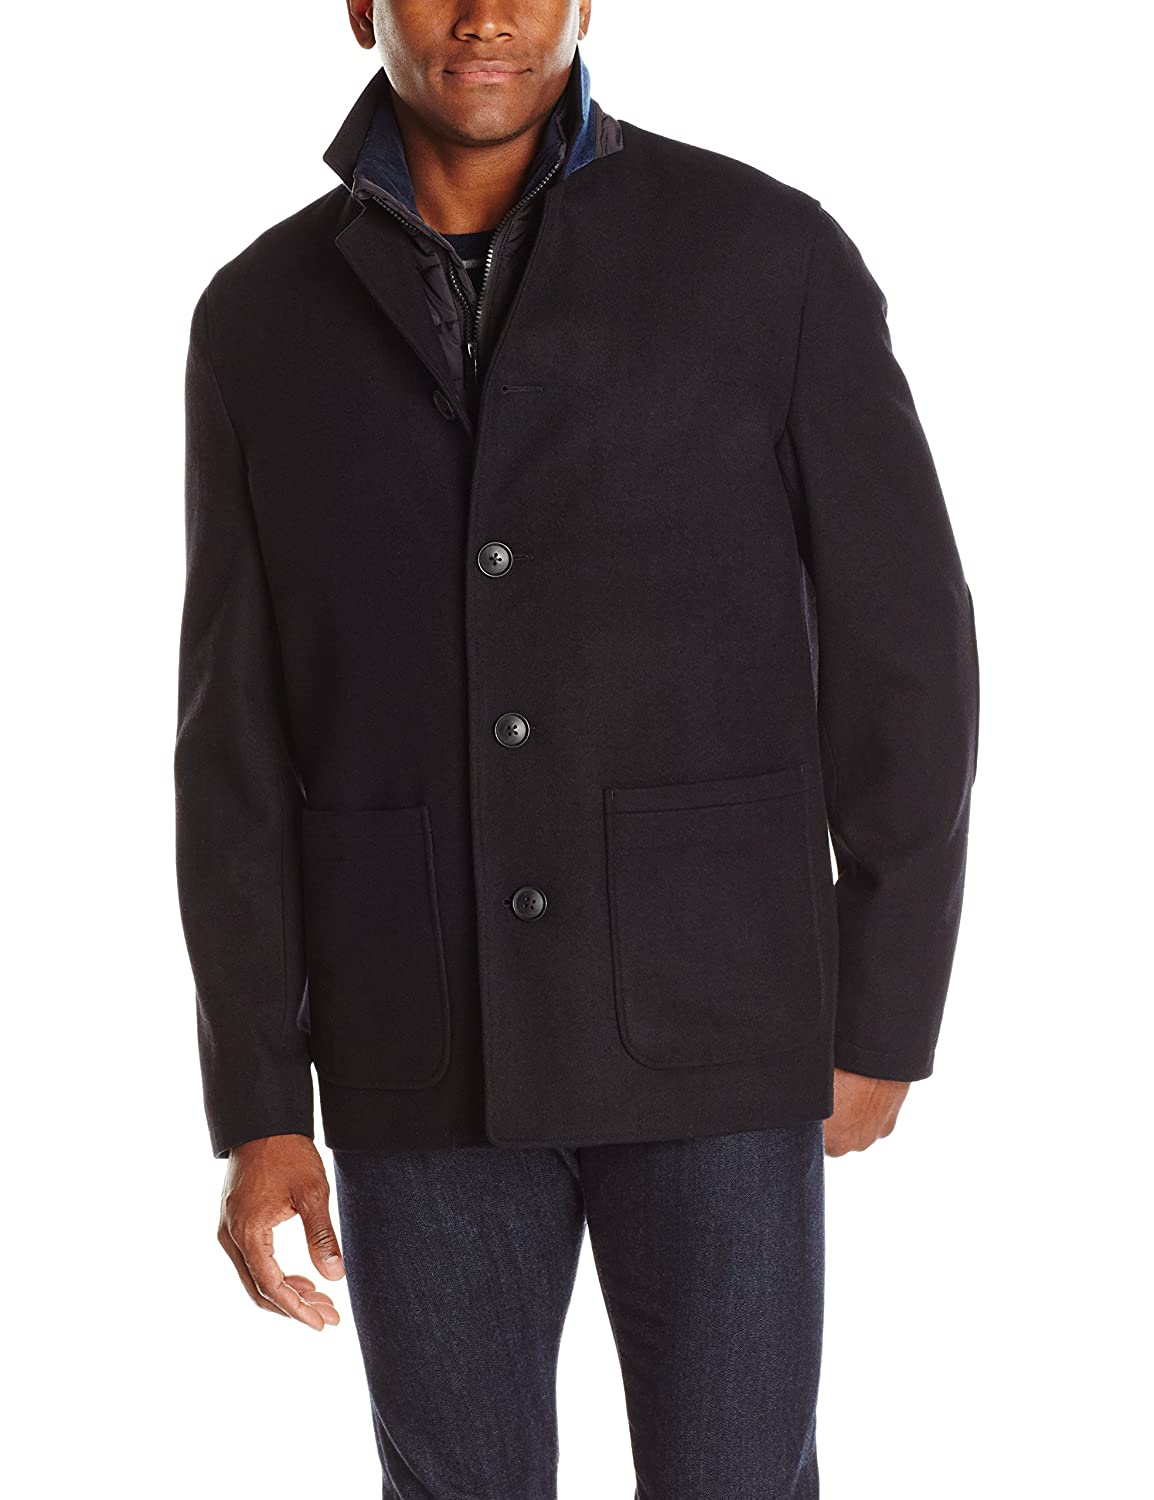 Nick Graham Men's Triboro 3 in 1 Wool Jacket with Vest Nick Graham Mens Apparel 3113K